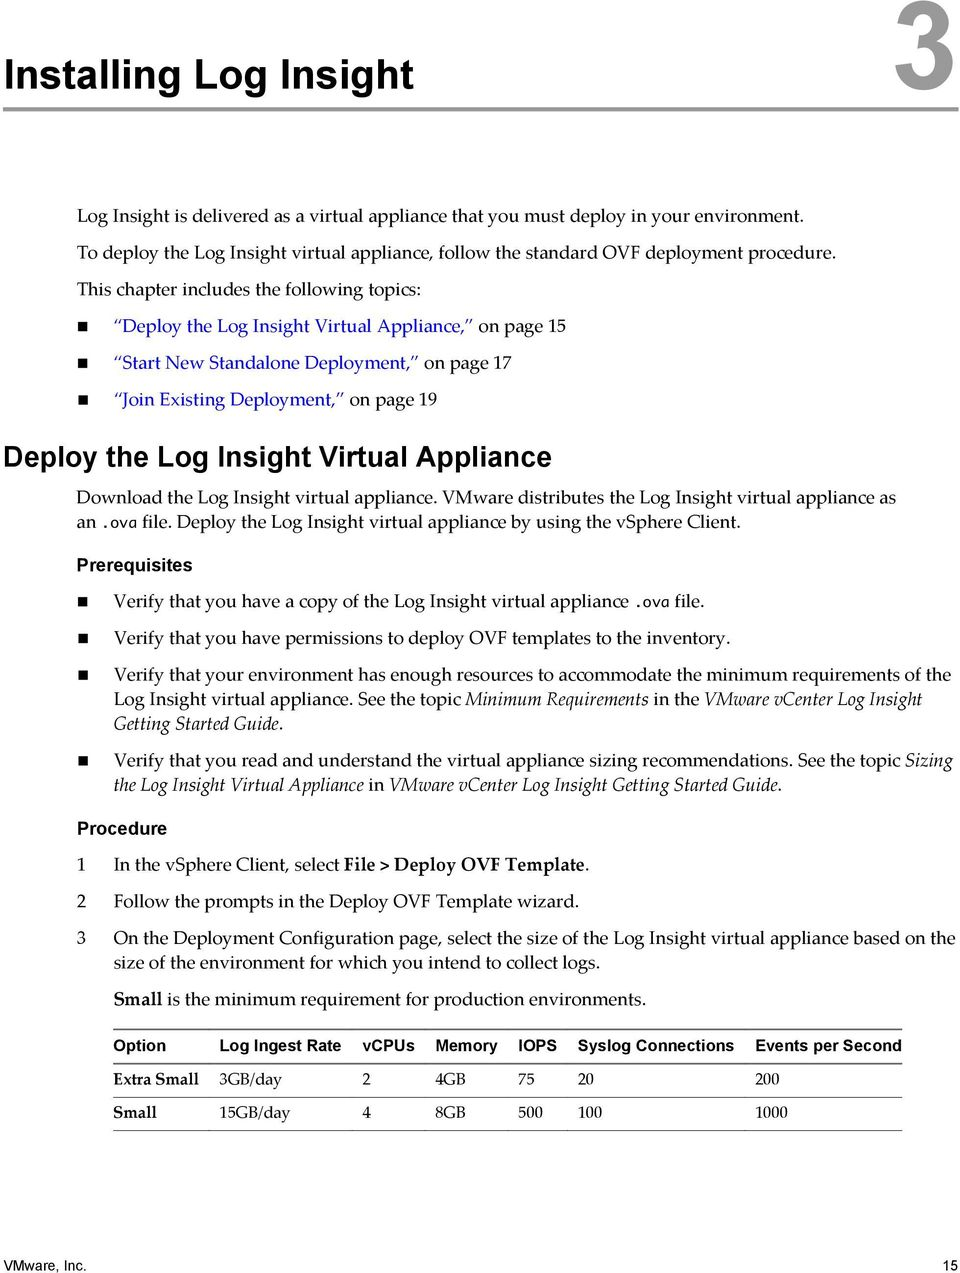 This chapter includes the following topics: Deploy the Log Insight Virtual Appliance, on page 15 Start New Standalone Deployment, on page 17 Join Existing Deployment, on page 19 Deploy the Log